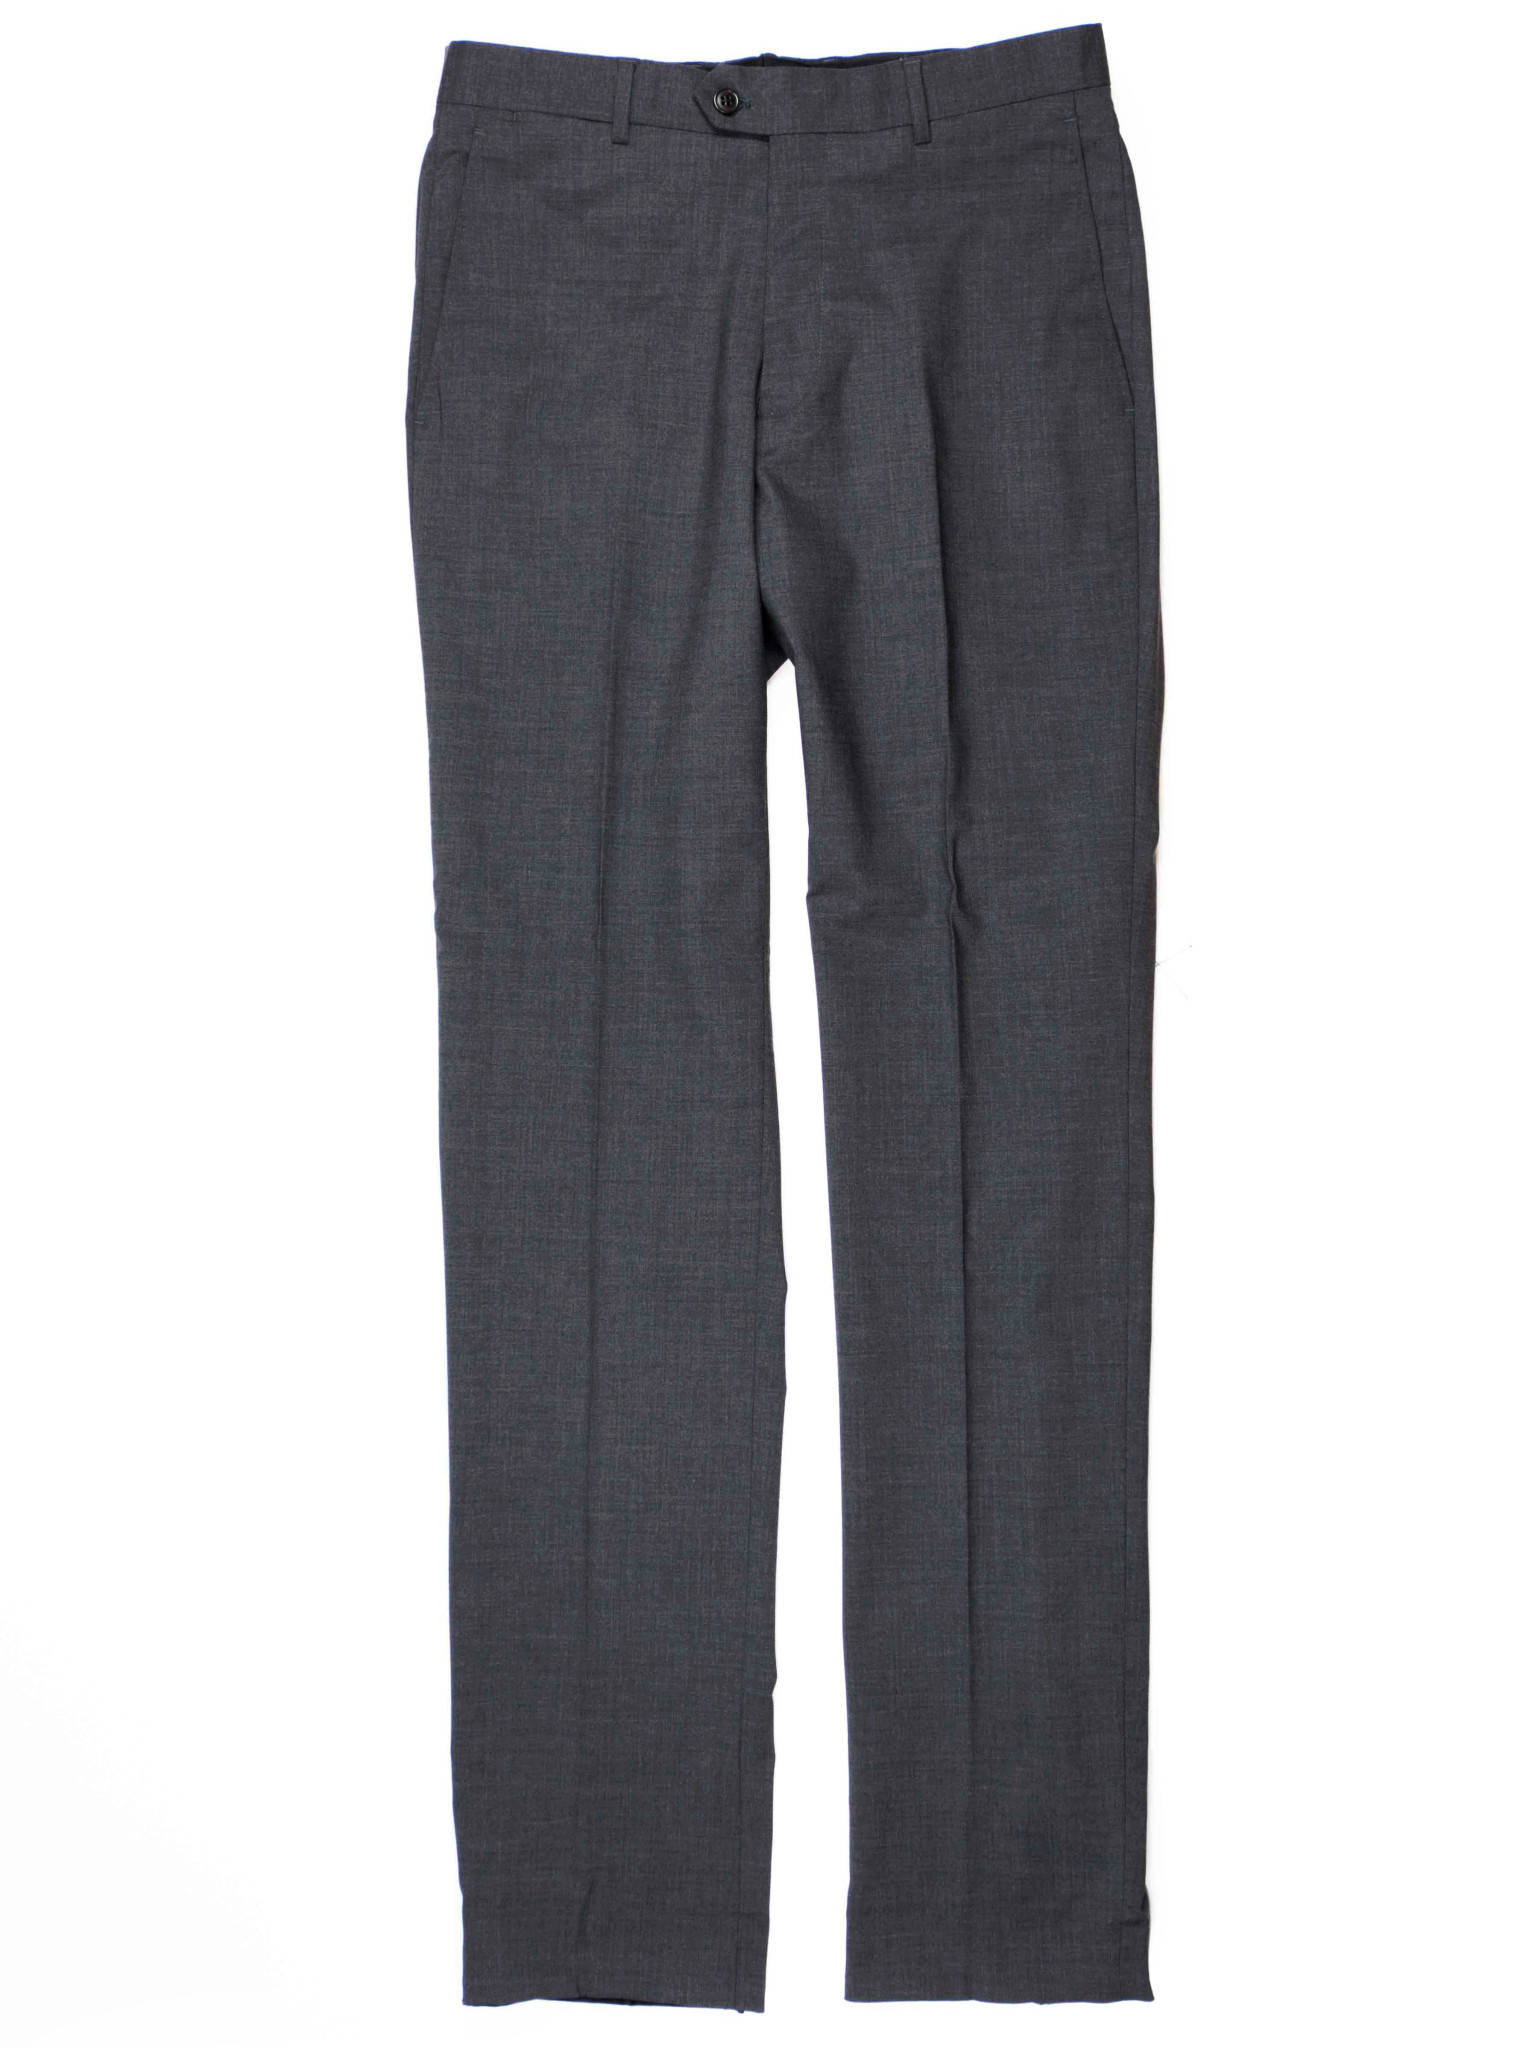 Essential Charcoal Suit Trouser-1